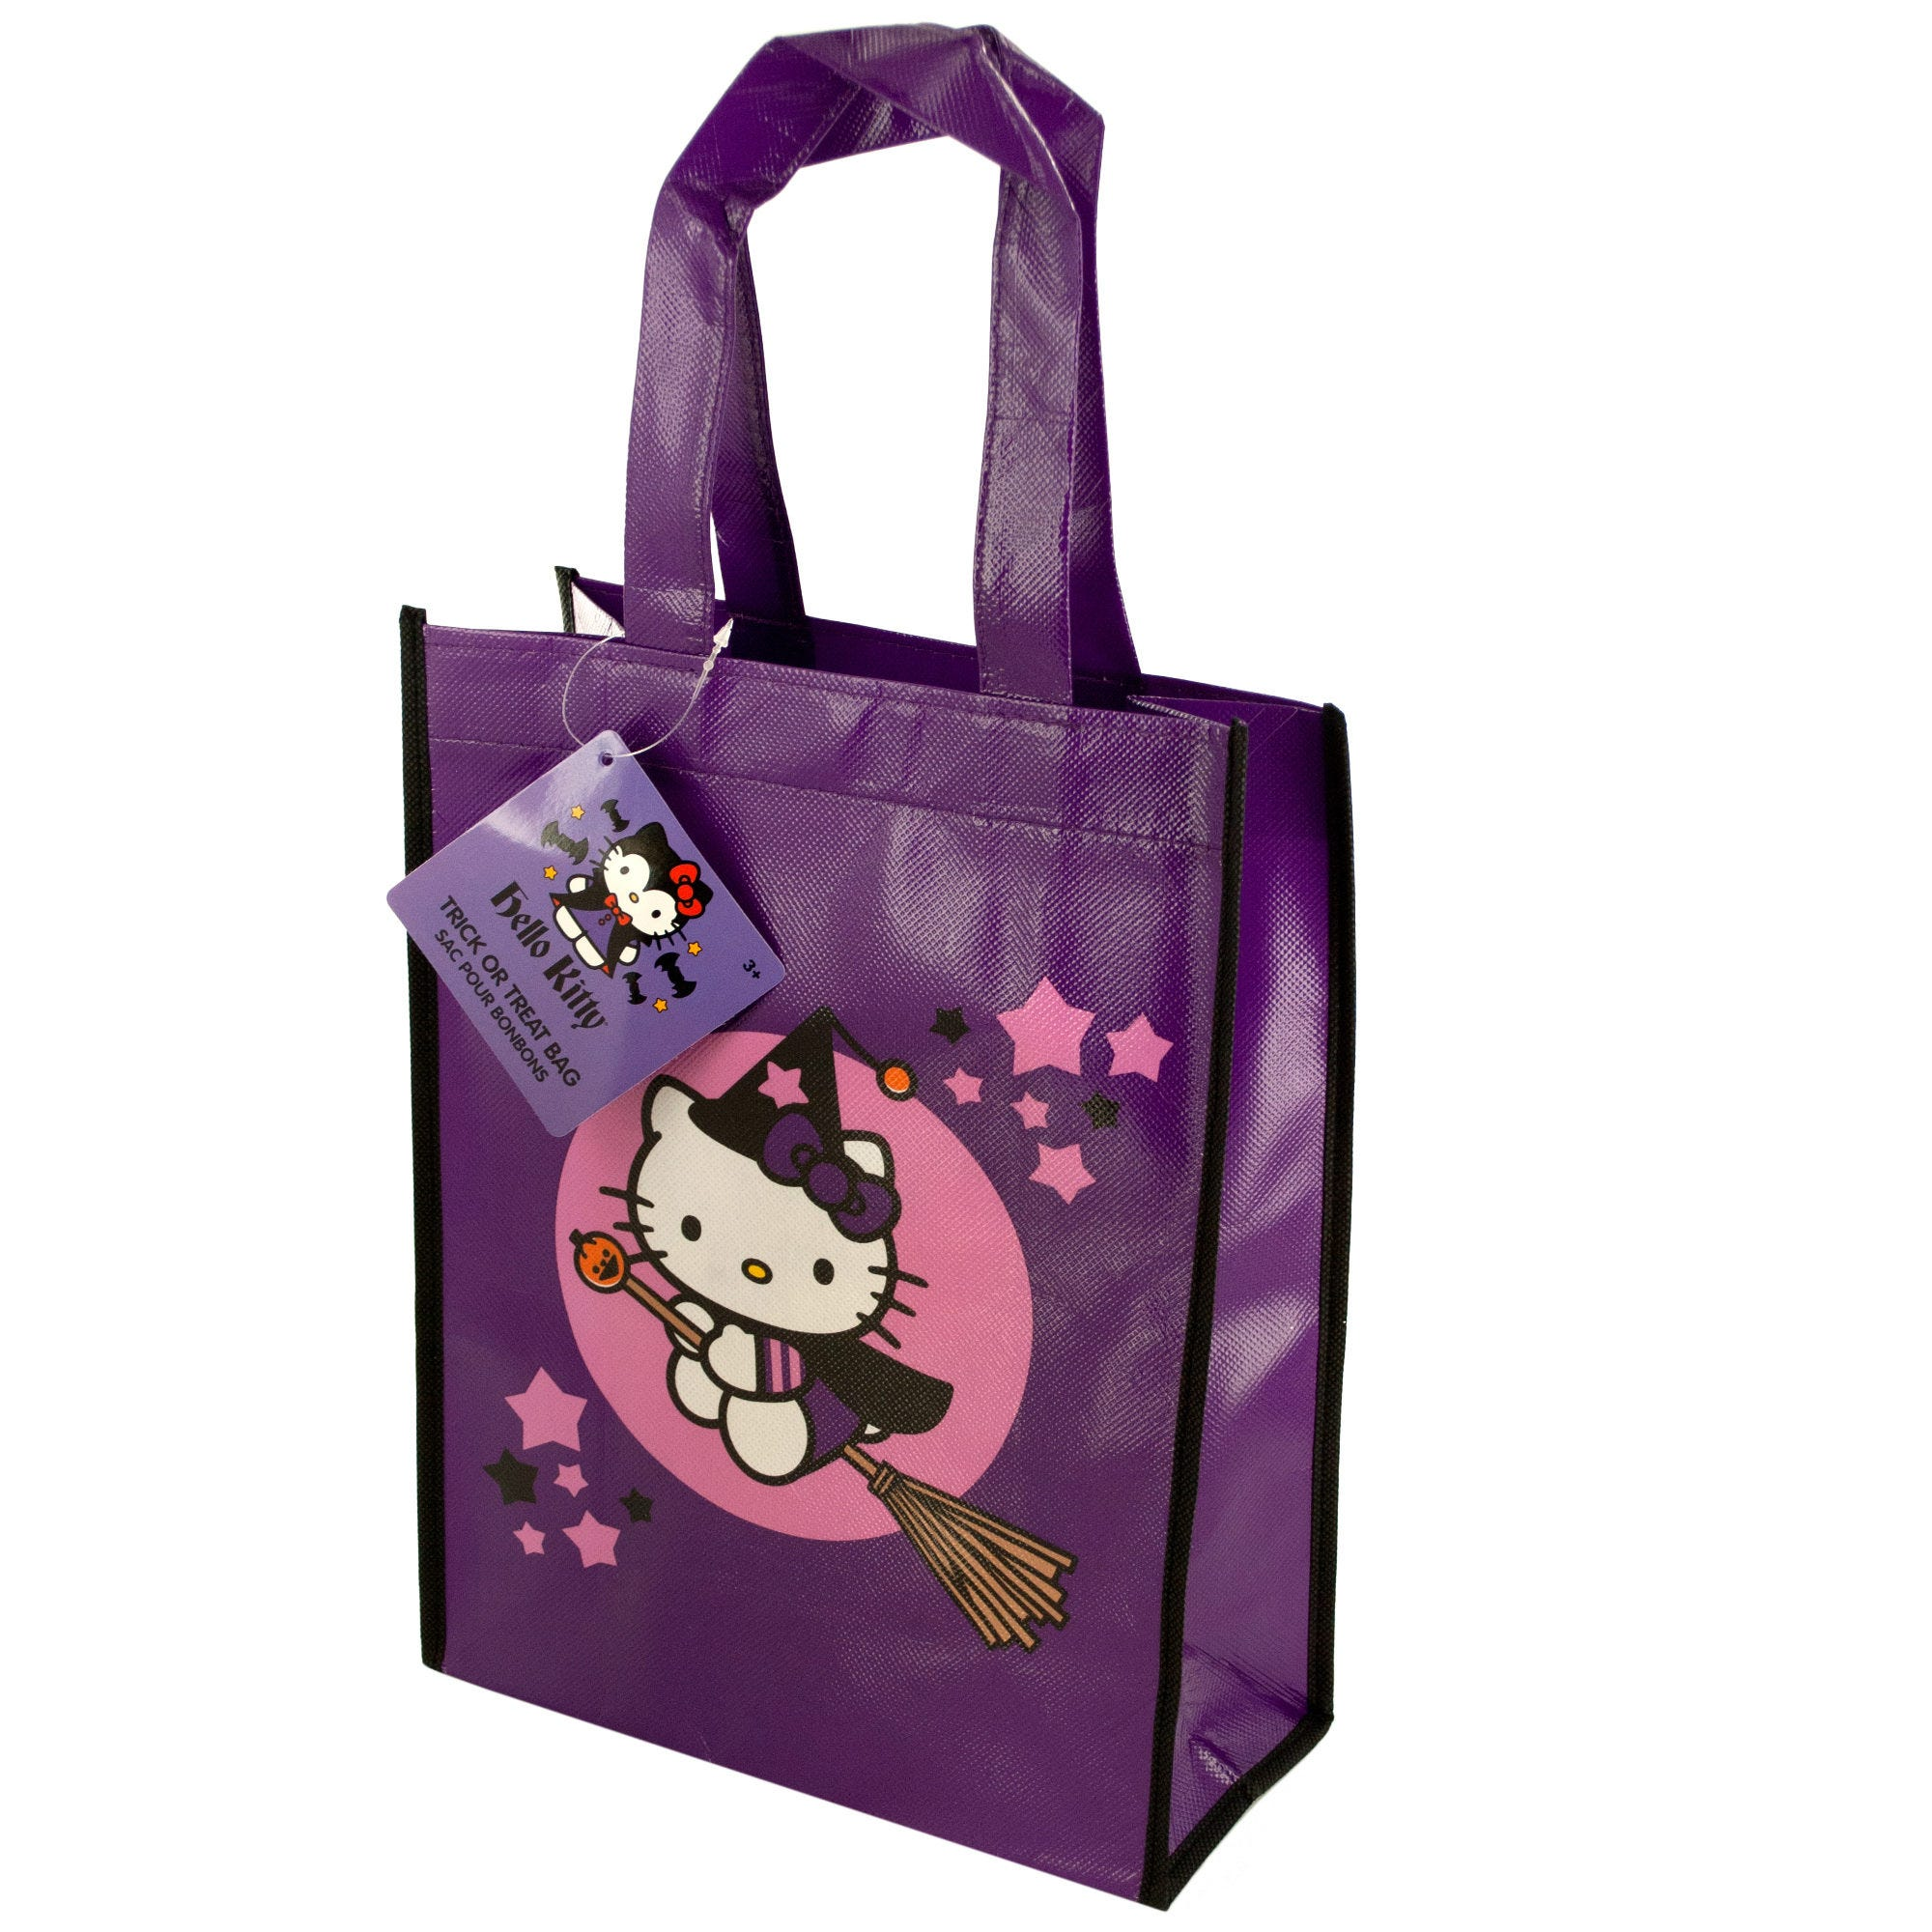 HELLO KITTY Trick or Treat Tote Bag- Qty 24